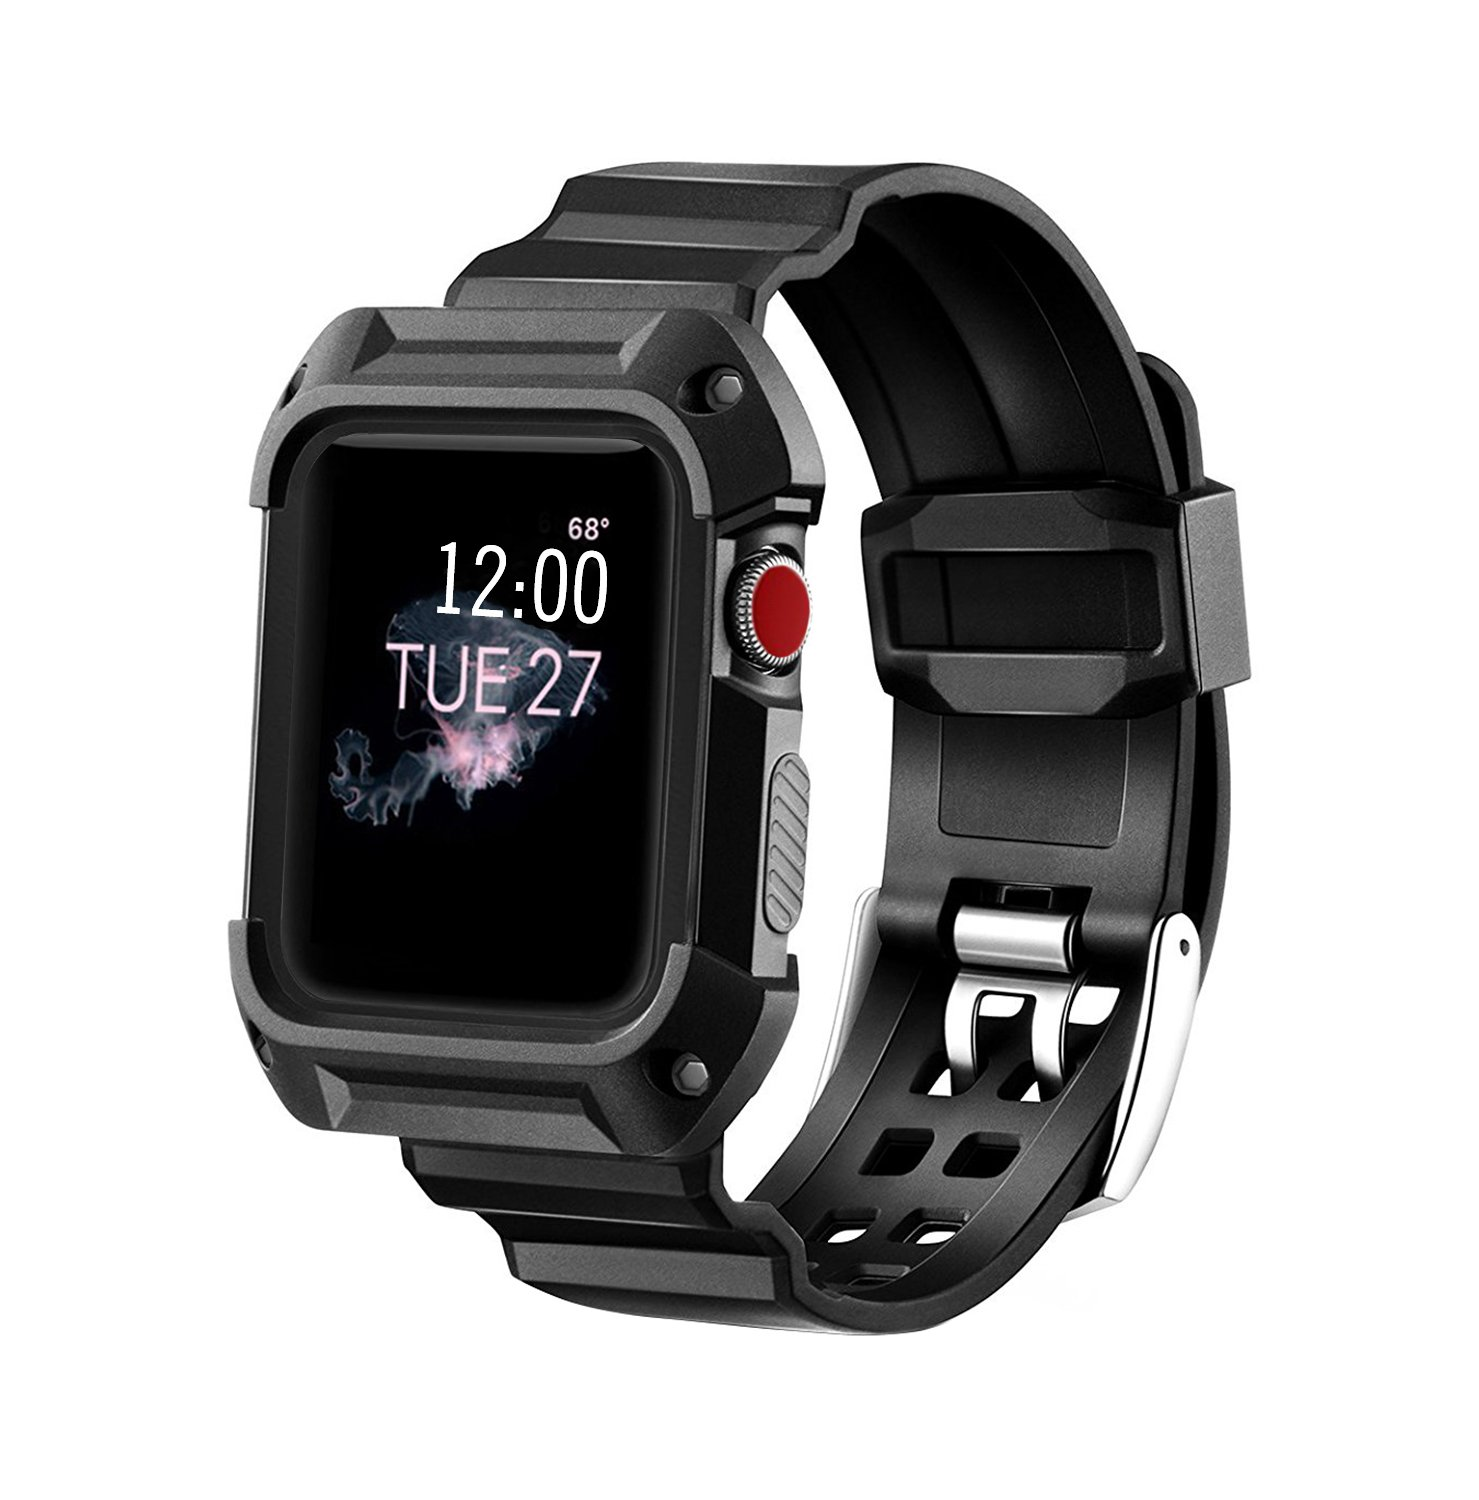 Compatible with Apple Watch Band and Case 42mm, MAIRUI Rugged Protective G Shock Replacement Wristband for Apple Watch Series 3/2/1, iWatch Sport/Edition (Black) by MAIRUI